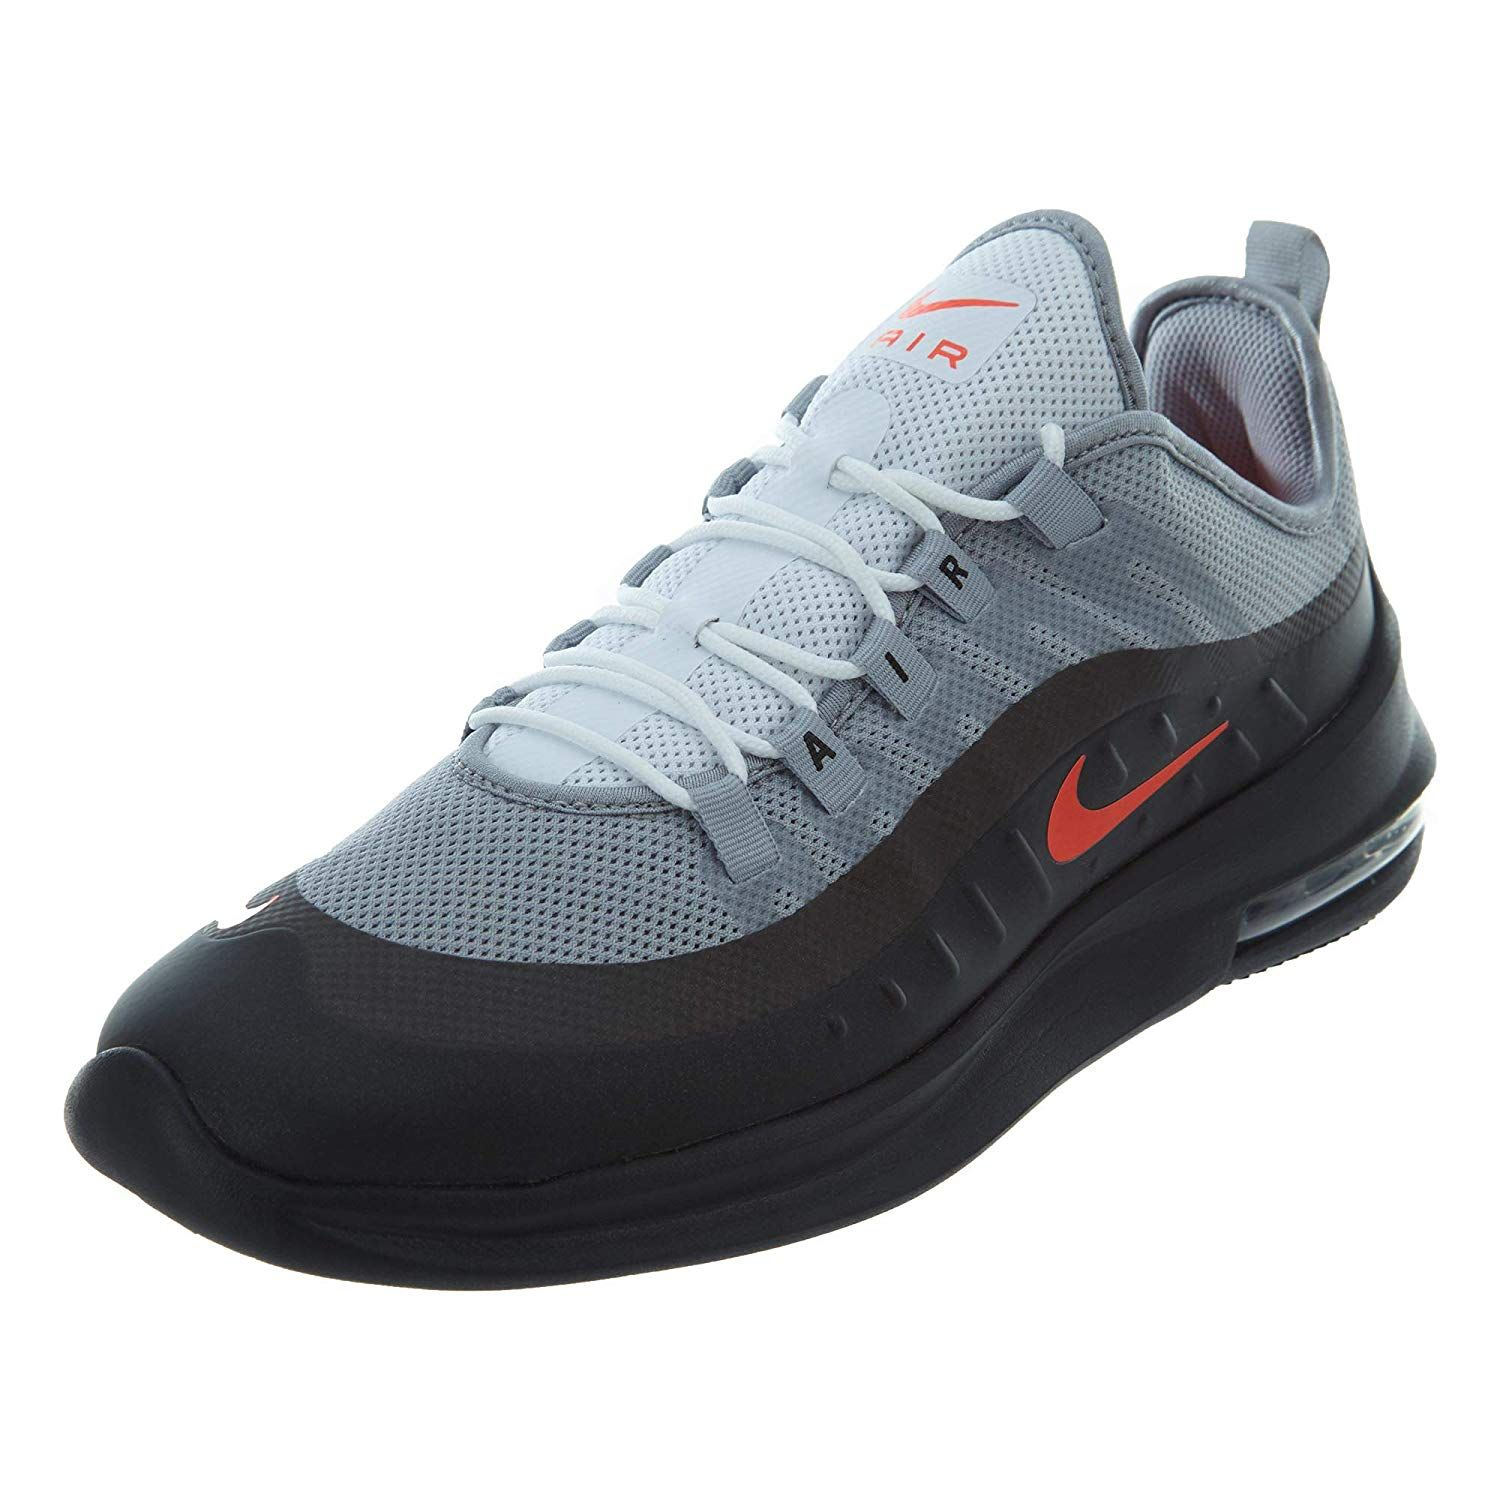 Nike Men's Air Max Axis Gym Wolf Grey/Black Sneaker (With